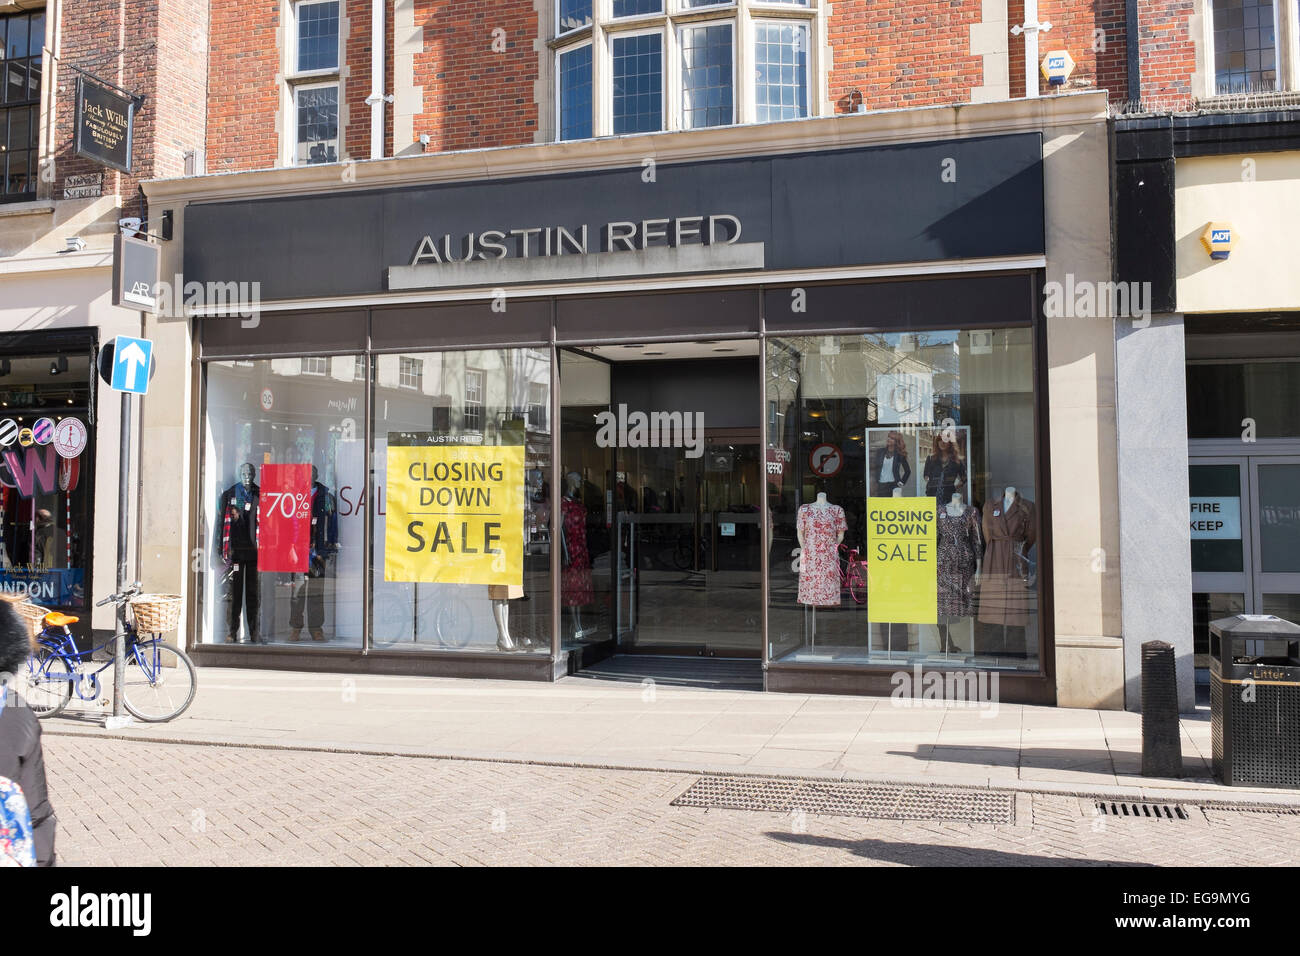 Austin Reed And Country Casuals Shop Closing Down Sale Sidney Street Stock Photo Alamy